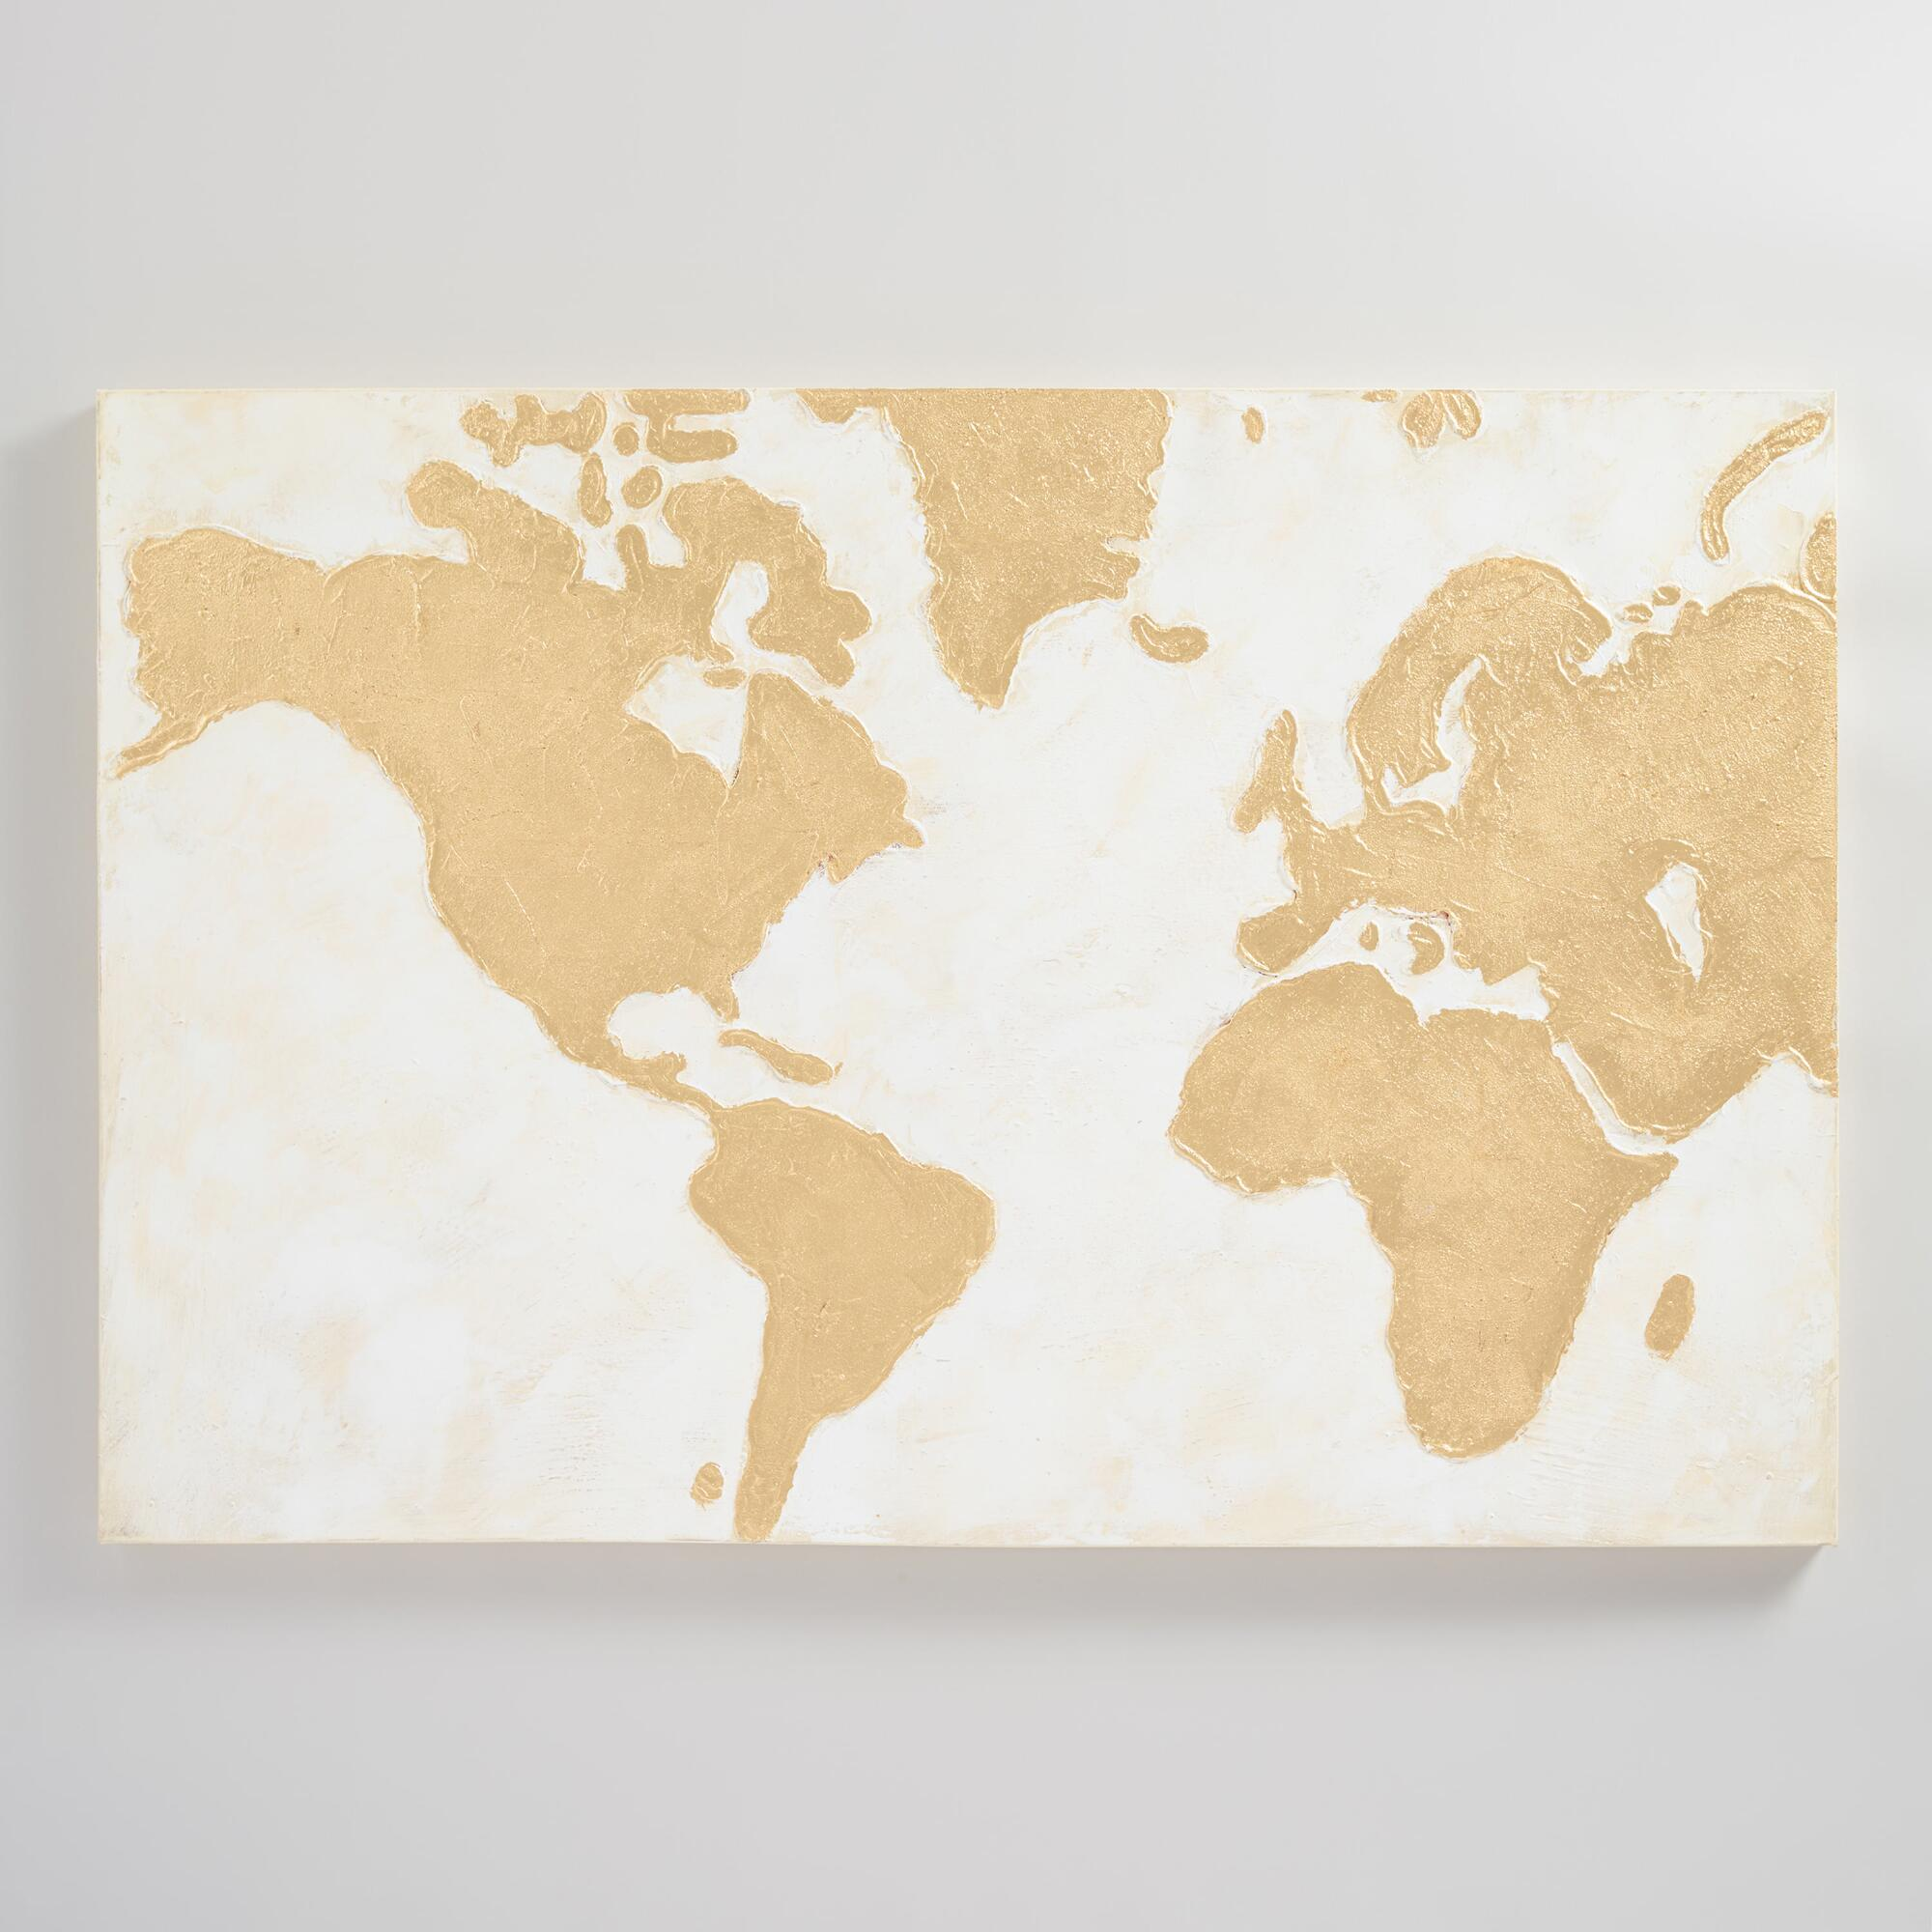 Canvas Map Wall Decor | World Market